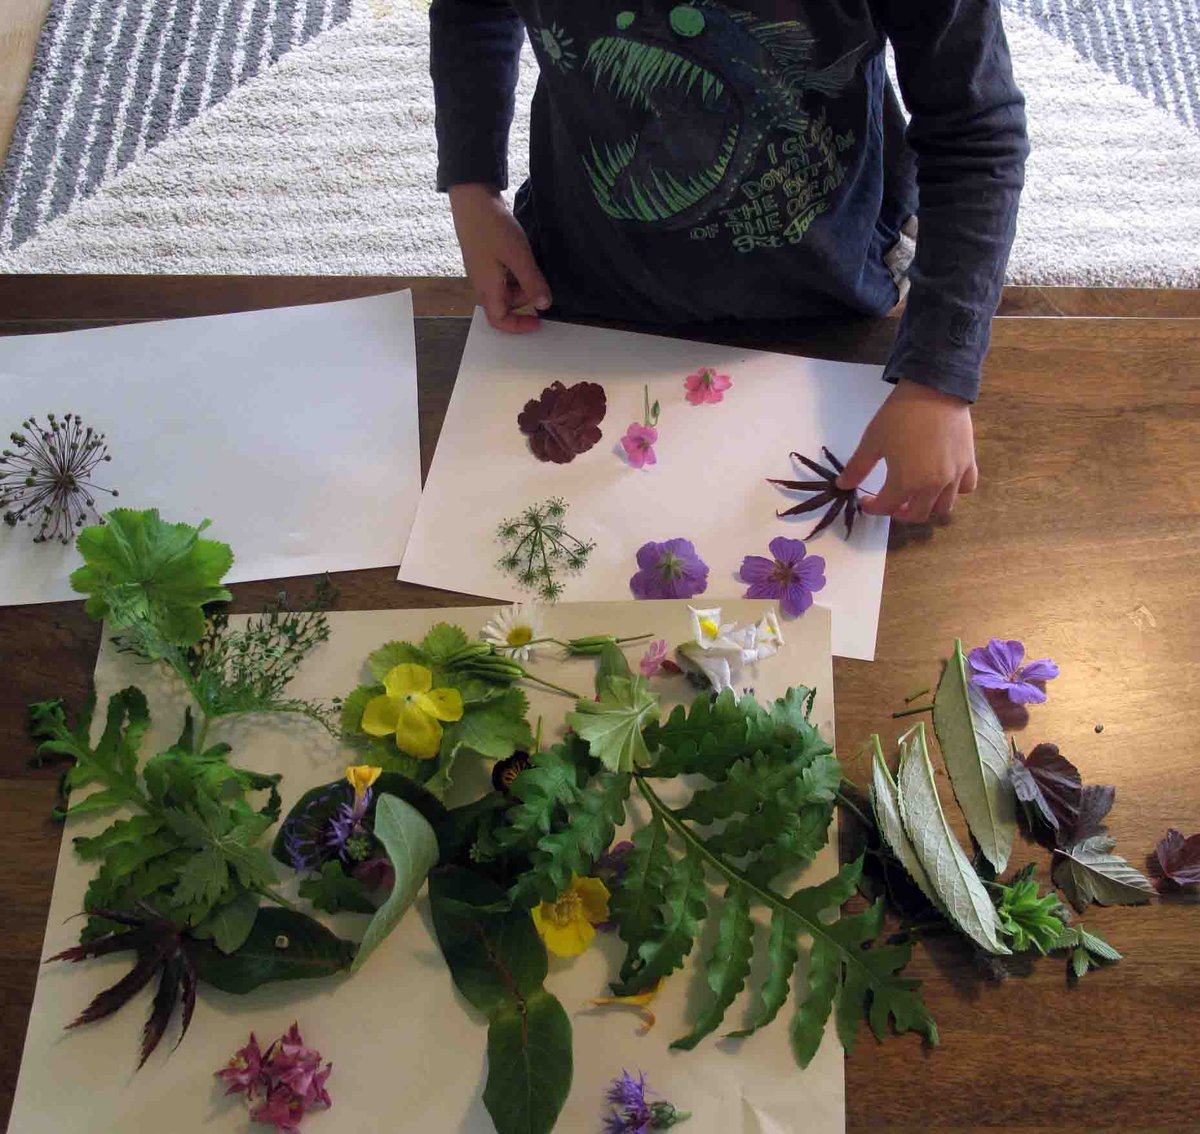 We're exploring the #ChildrensArtWeek nature theme today with these flower pattern ideas for wee ones Find instructions here: https://t.co/1PS0wxigN7  #DCAmakes @UoDPsychology #PlayAtHome #createtogether https://t.co/CY3yoJZAfd